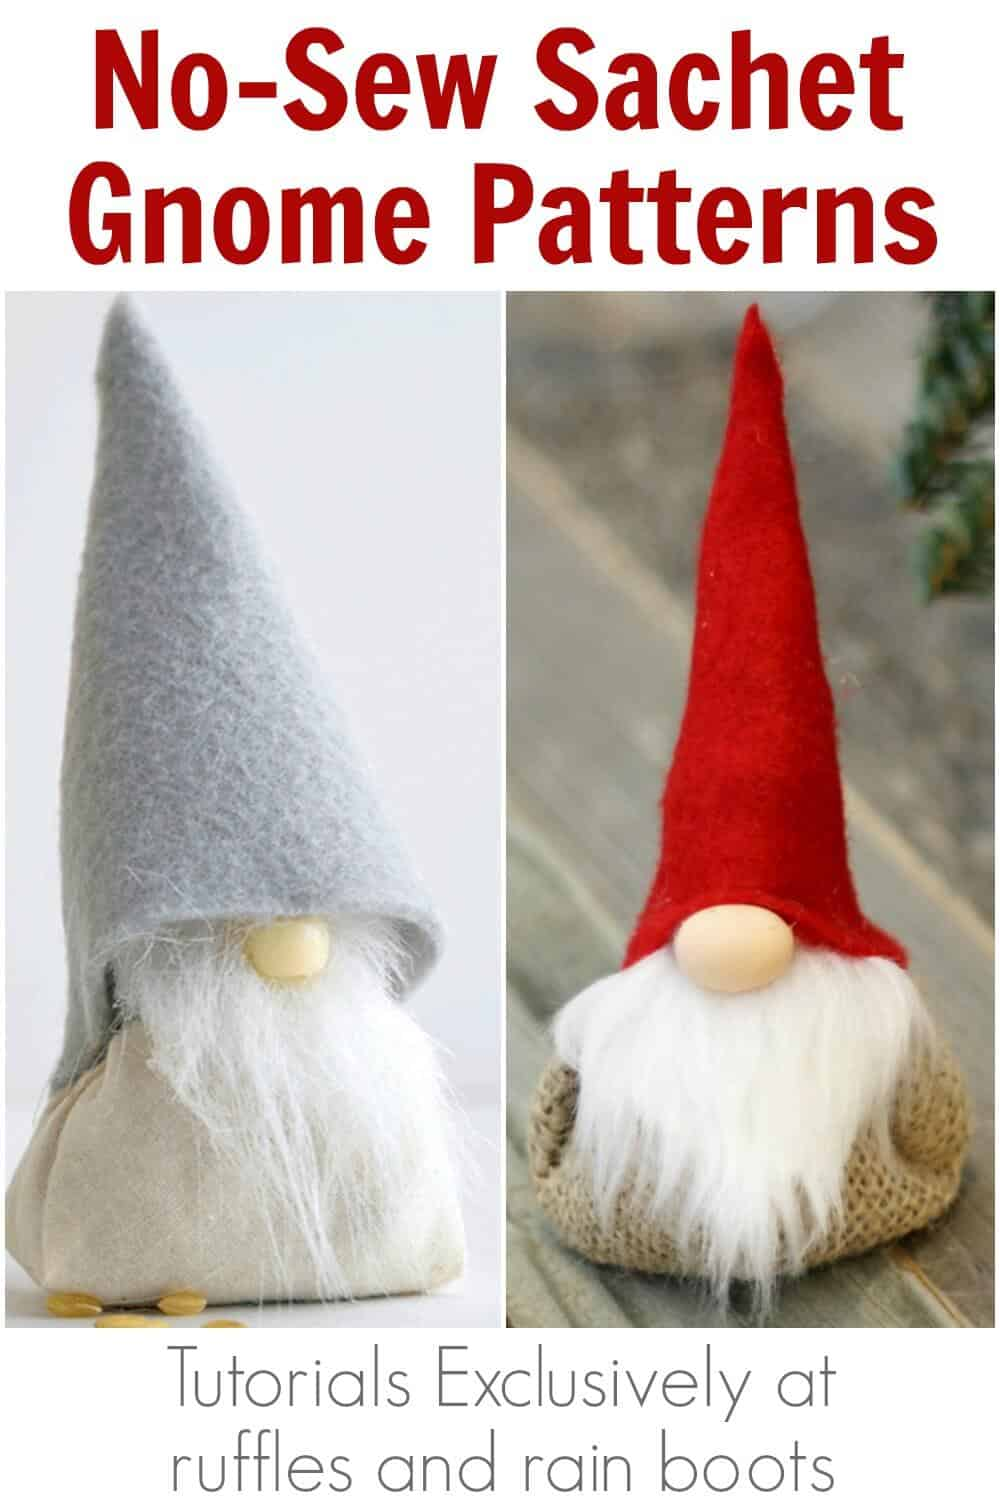 two easy gnomes with text which reads no sew sachet gnome patterns and tutorials